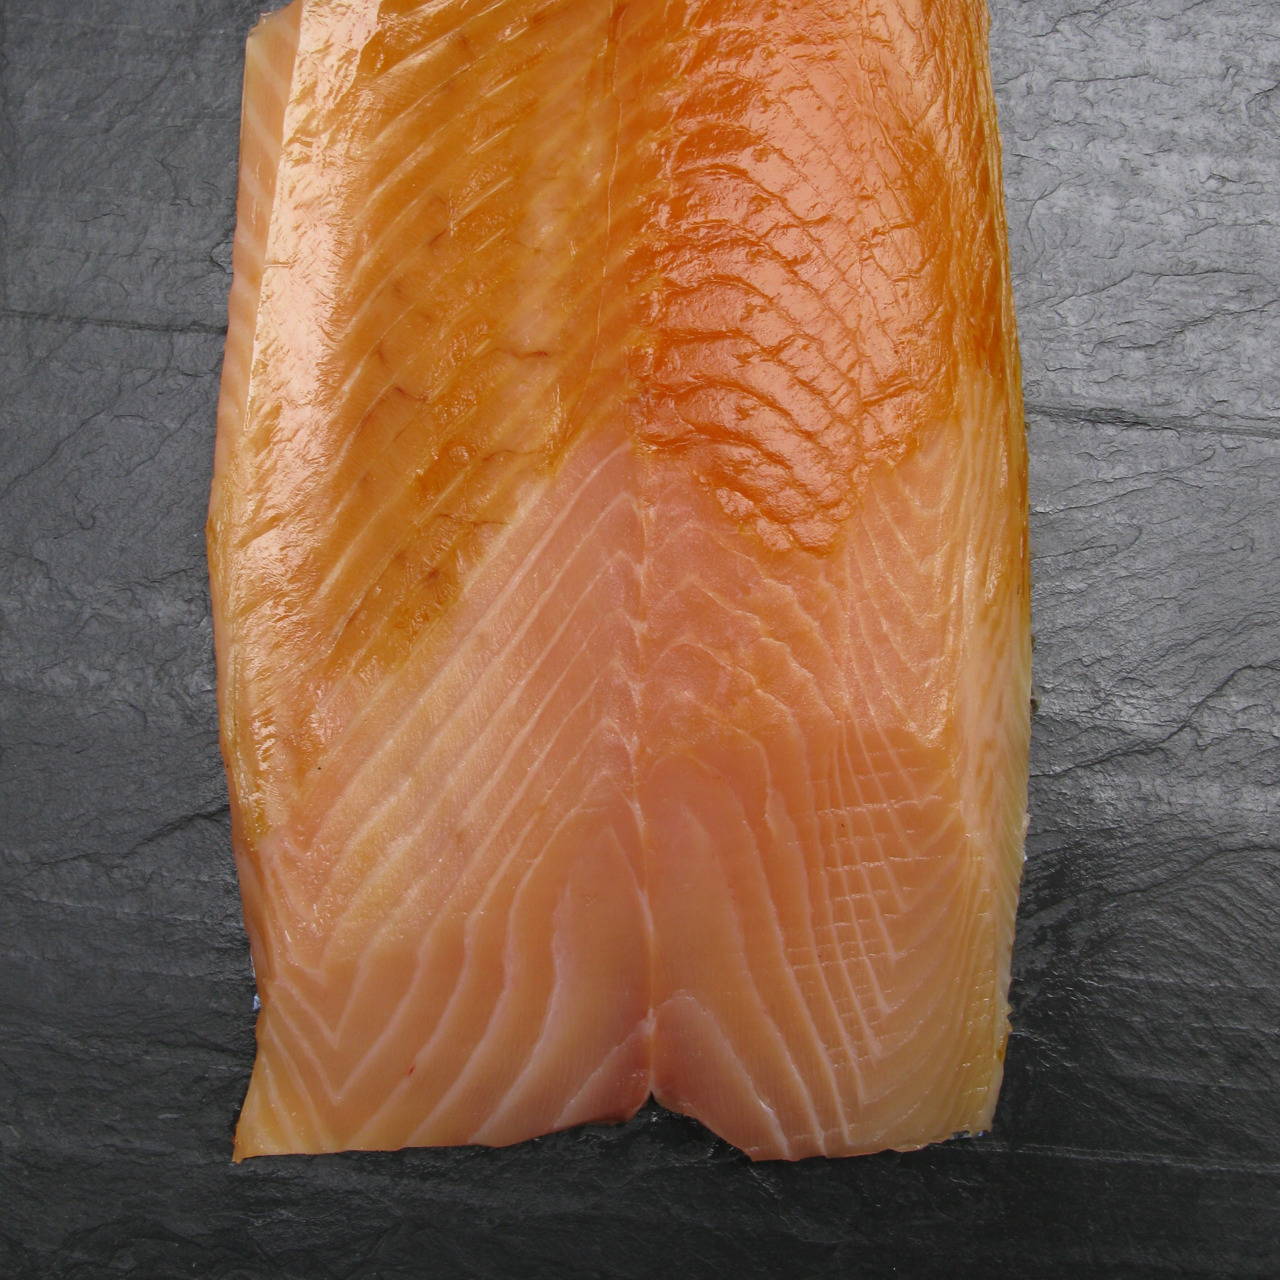 russanddaughters:  Russ & Daughters Exclusive: Wild Baltic Smoked Salmon For a limited time, food lovers will have the special chance to try a smoked salmon unlike any other; the newest catch of Russ & Daughters' Wild Baltic Smoked Salmon is finally here. (Devoted fans have been calling for months, waiting for the season to begin.) This rare gastronomic experience is available for a limited time only, so stop by the shop soon, or call us at 212-475-4880 to place an order, before it's too late. Prepare to be wowed by its elegant smoke, velvety texture, and champagne color. This salmon feeds on herring, a protein-rich diet that contributes to its lean, healthy body and signature hue, and that also provides an added bonus: an extra dose of Omega-3s. Wild Baltic Smoked Salmon is so rich and delicate that the Russ family likes it best accompanied by nothing other than a little bit of fresh black pepper. Russ & Daughters is the exclusive importer of this salmon, from a small multi-generational artisanal smokehouse on the Bornholm coast of Denmark.